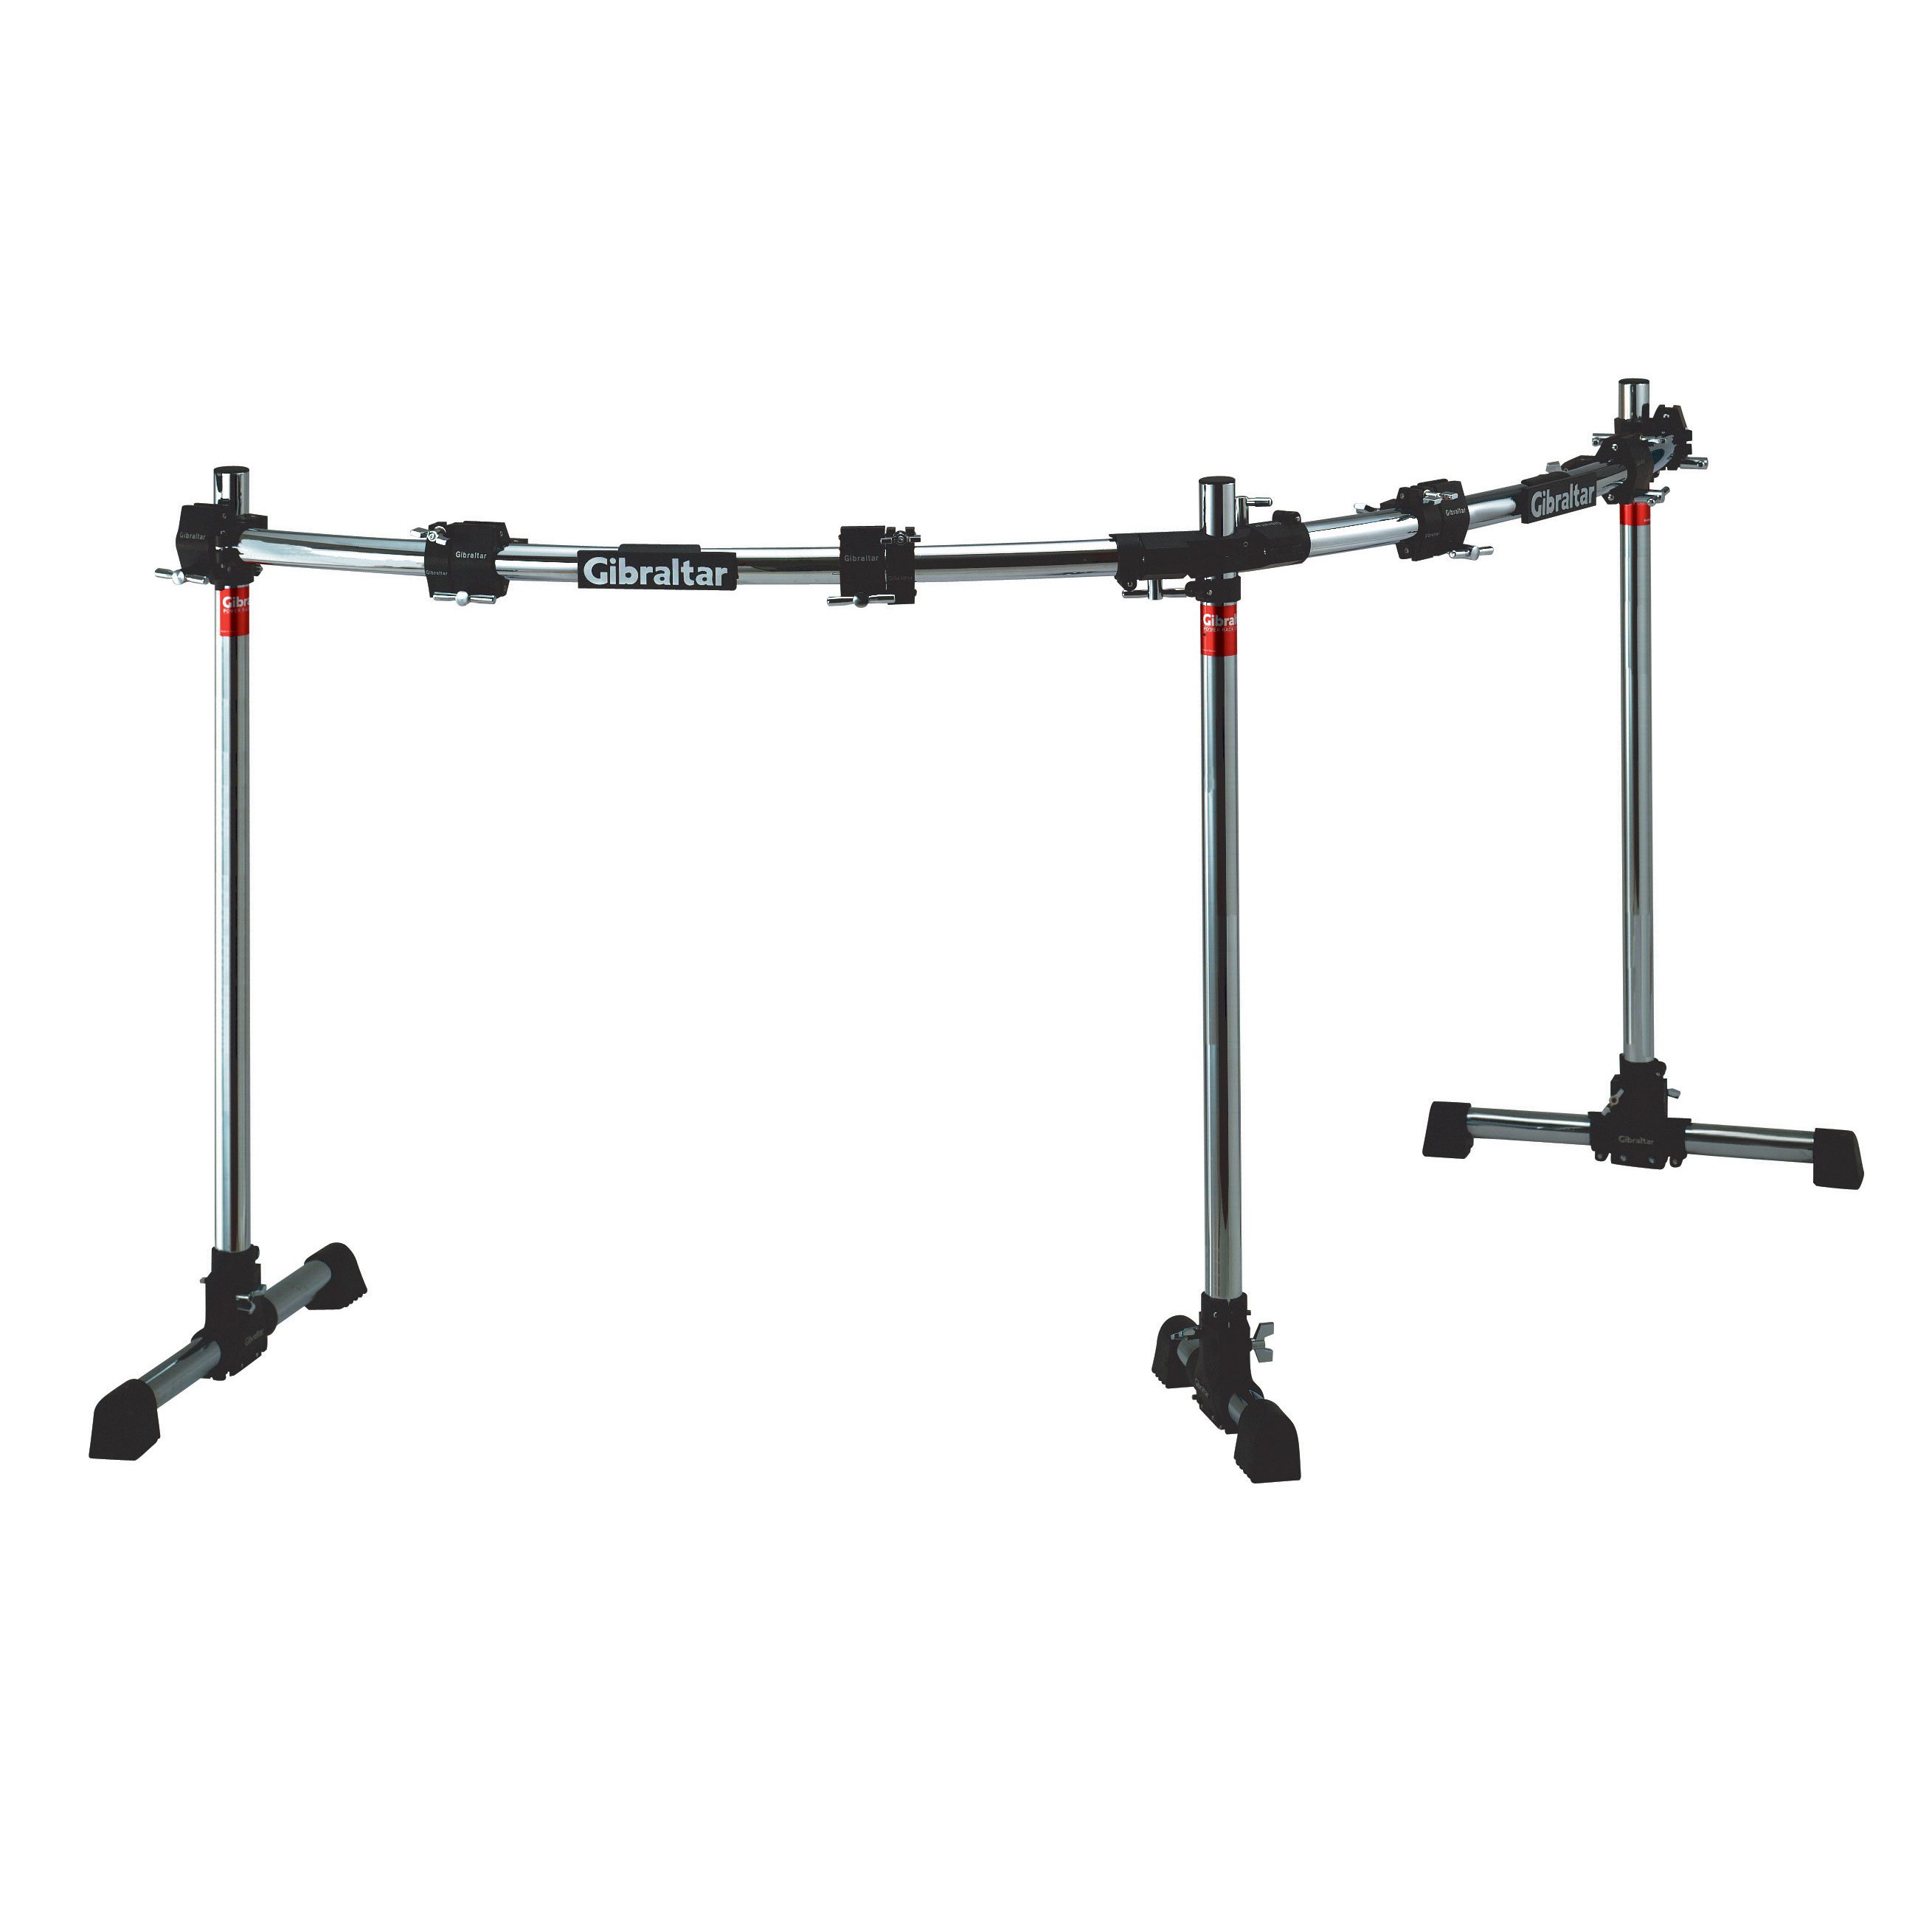 Gibraltar GRS-850DBL Curved Double Bass Drum Rack